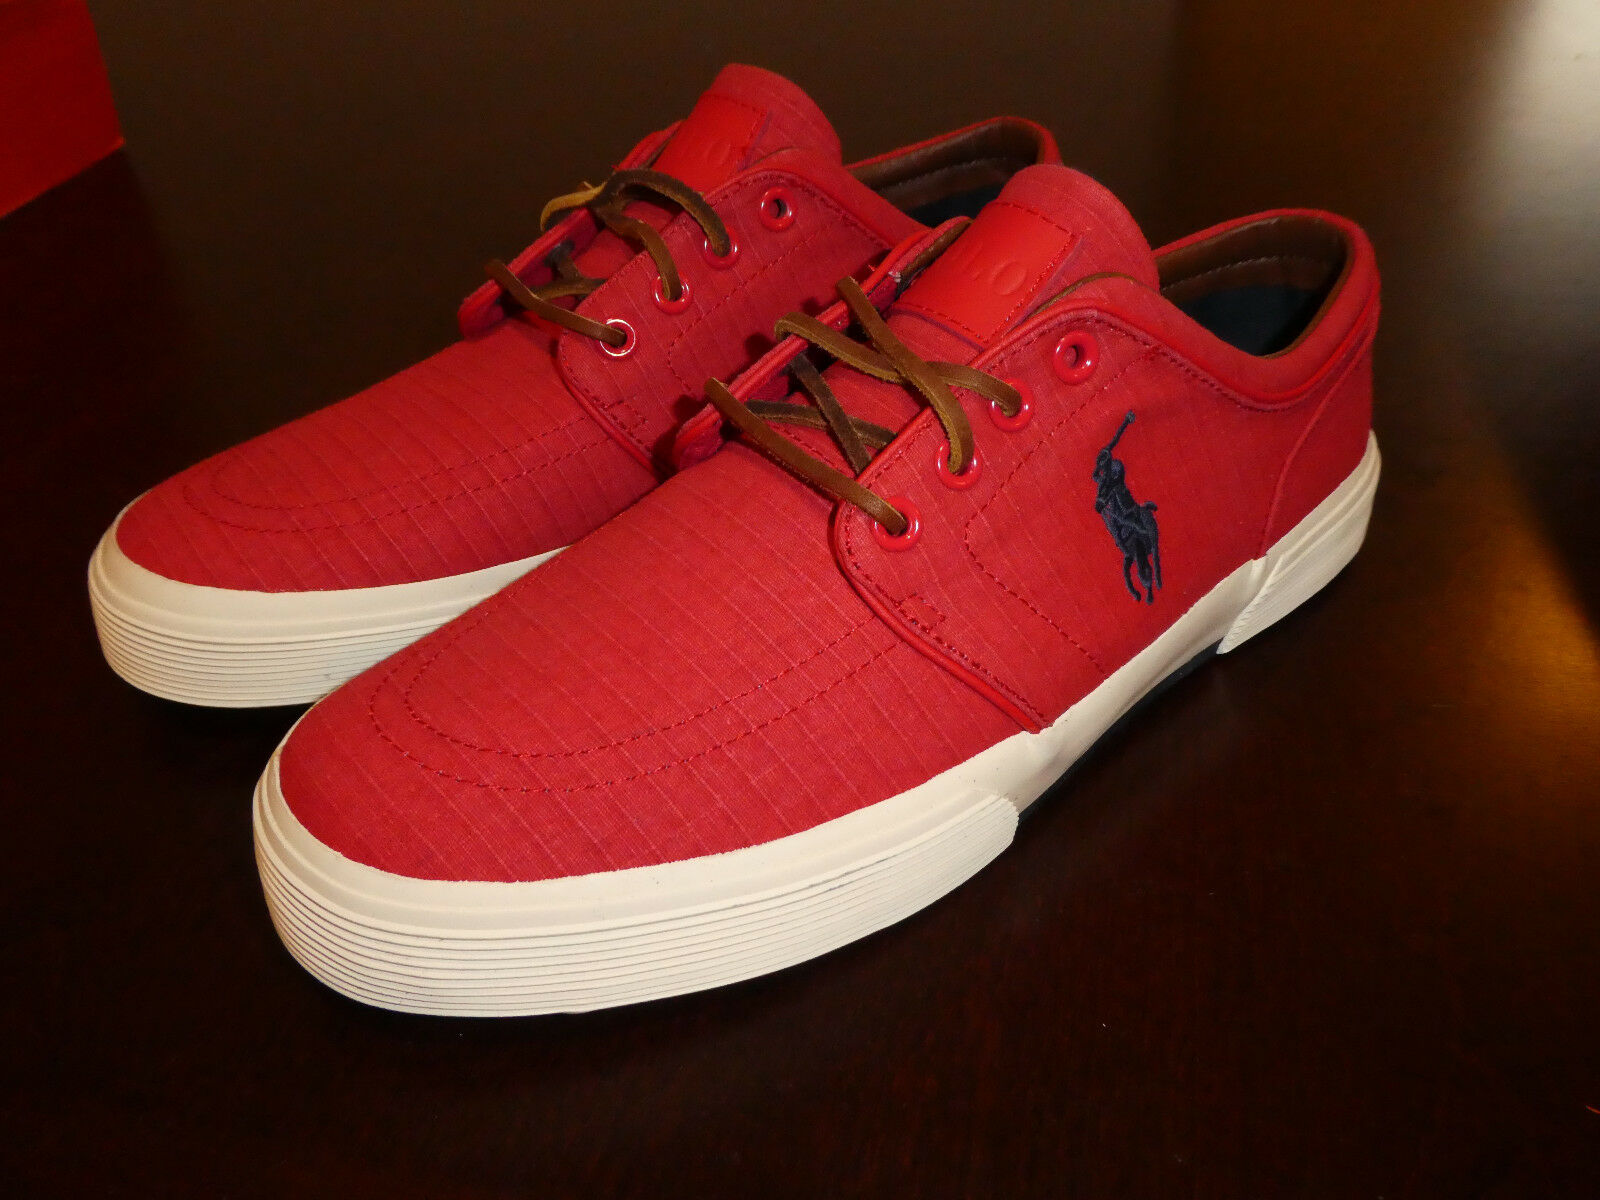 Polo Ralph Lauren Faxon Low SK VLC mens schuhe boat new  rot rip stop